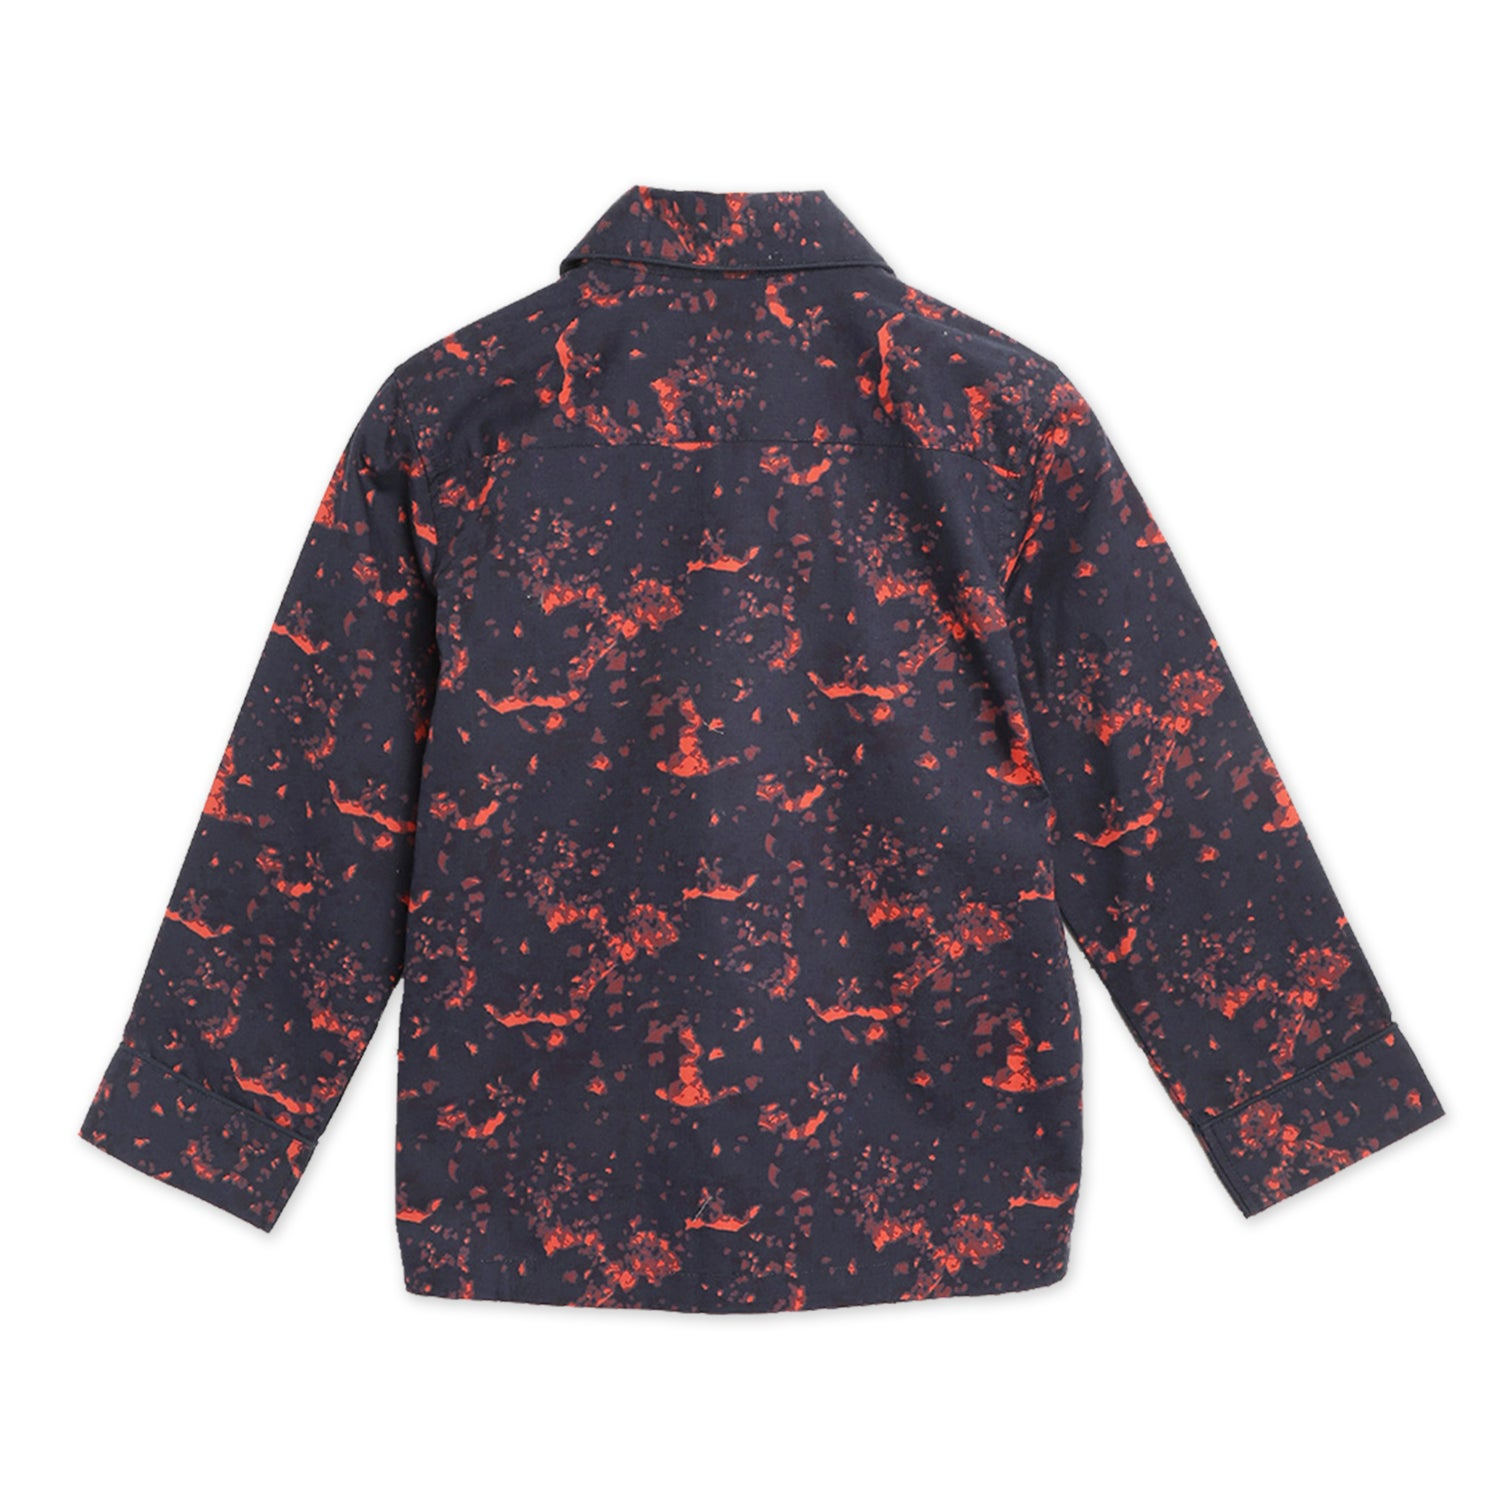 Cherry-Crumble-Kids-Unisex-Long-Regular-Sleeves-Collared-Full-Length-Abstract-Shirt-Pyjama-Nightsuit